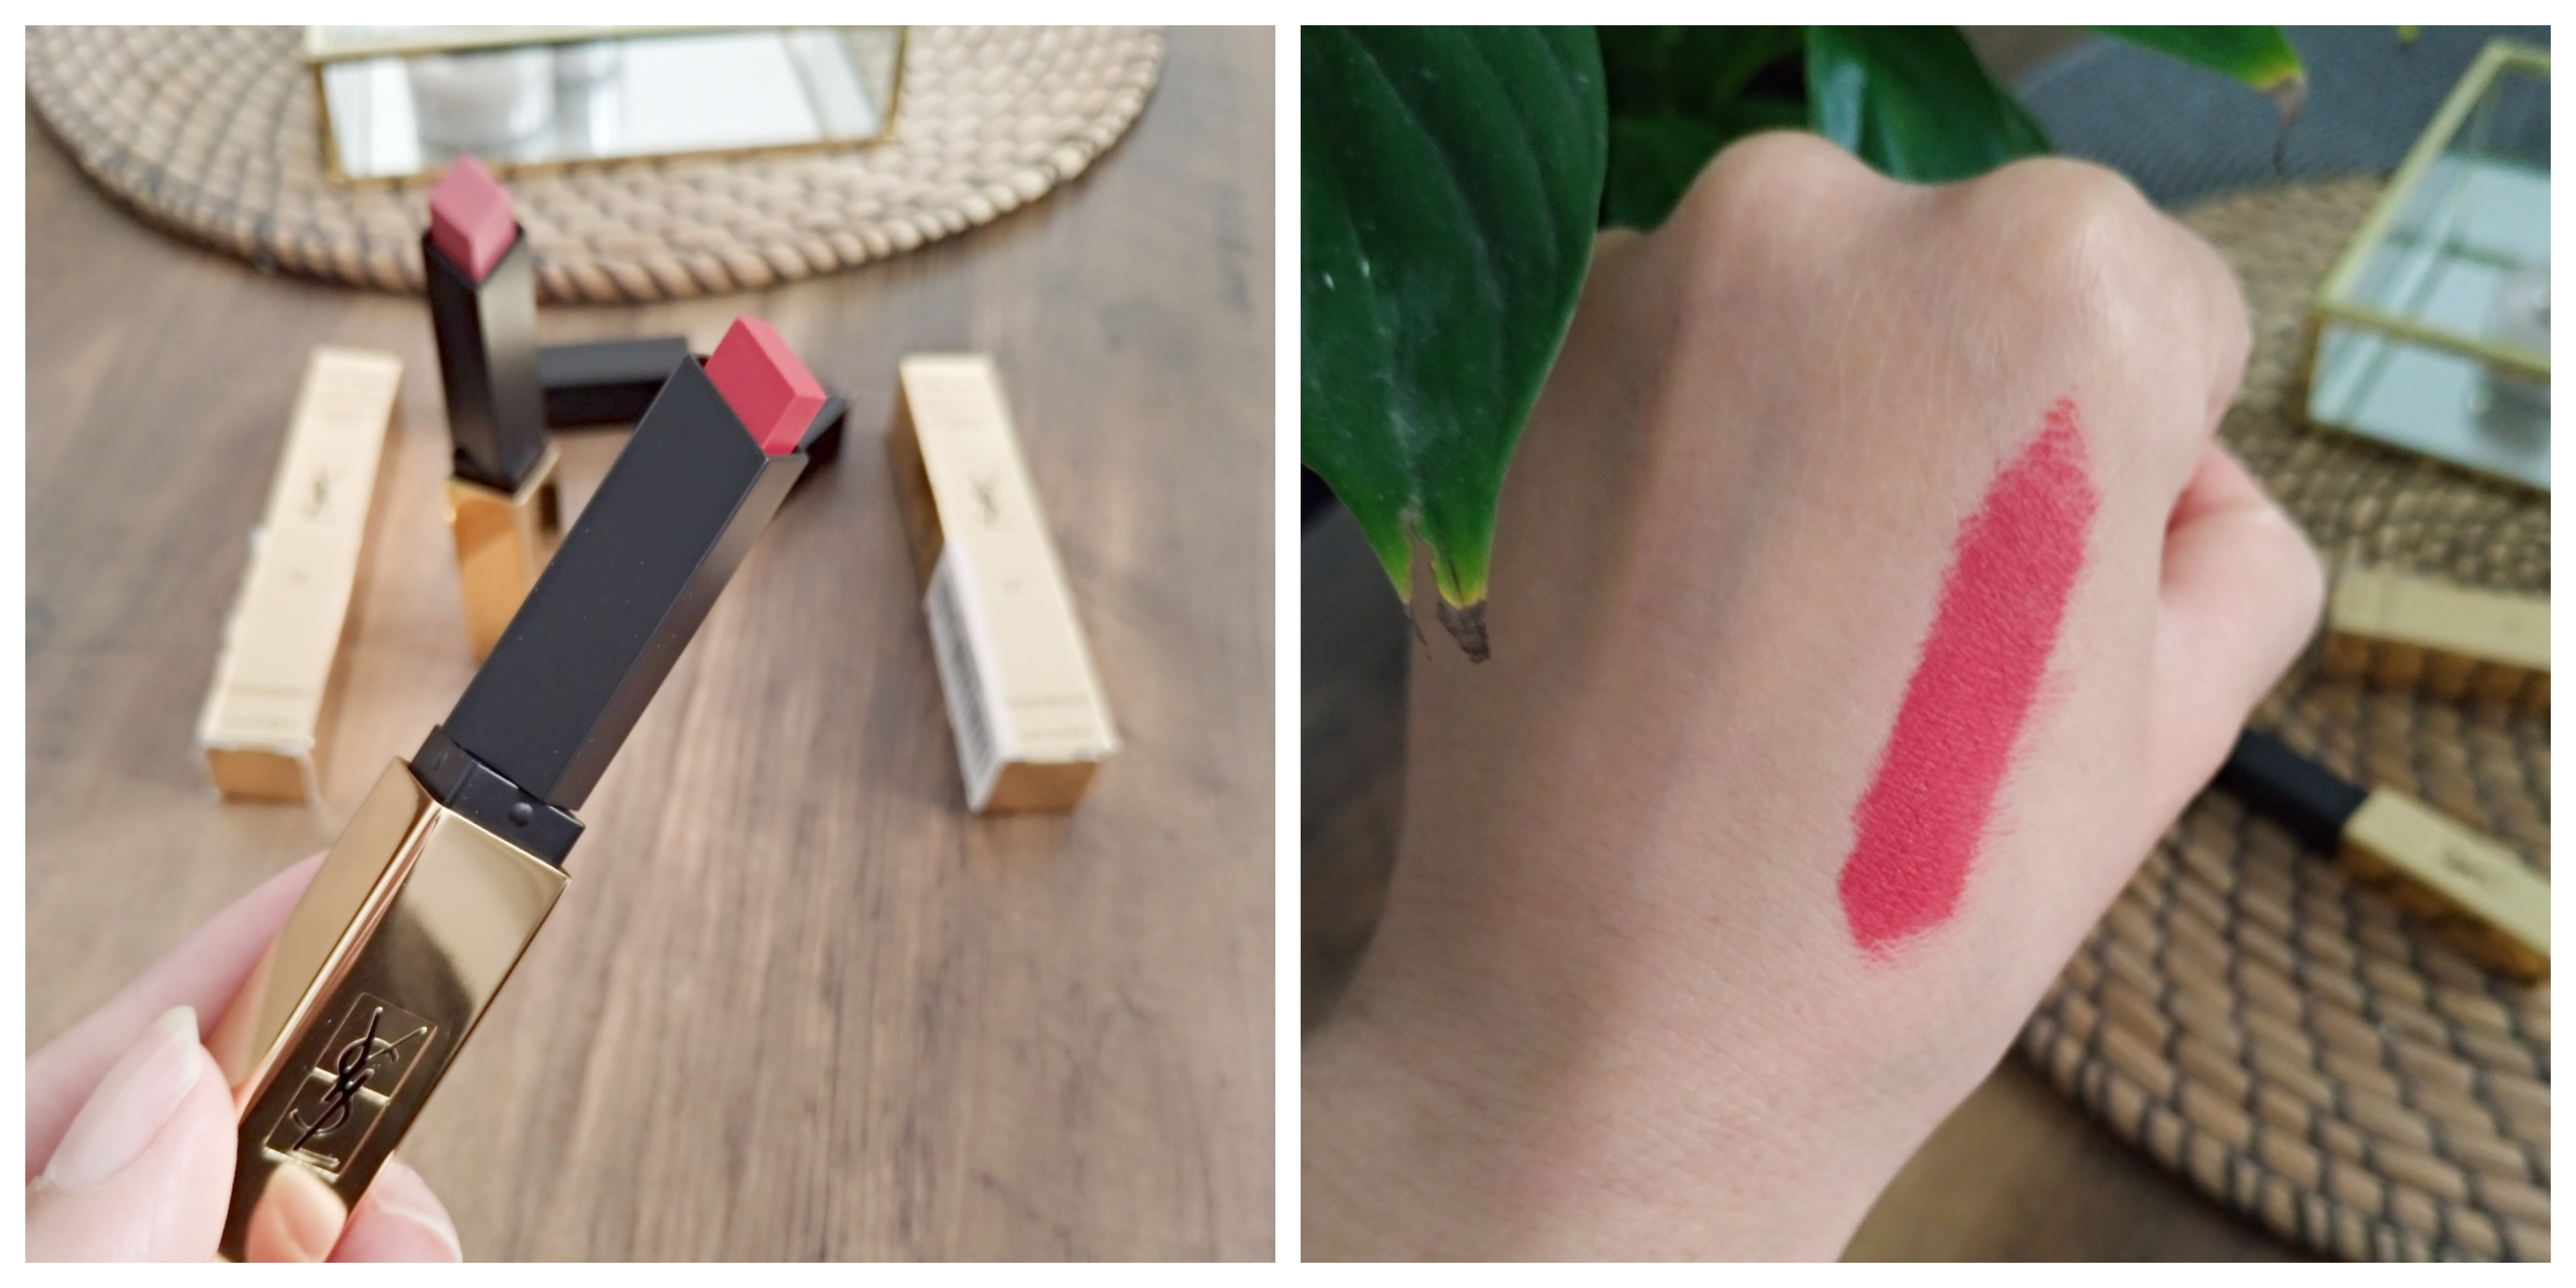 Swatch The Slim Yves saint laurent teinte 21 rouge paradoxe